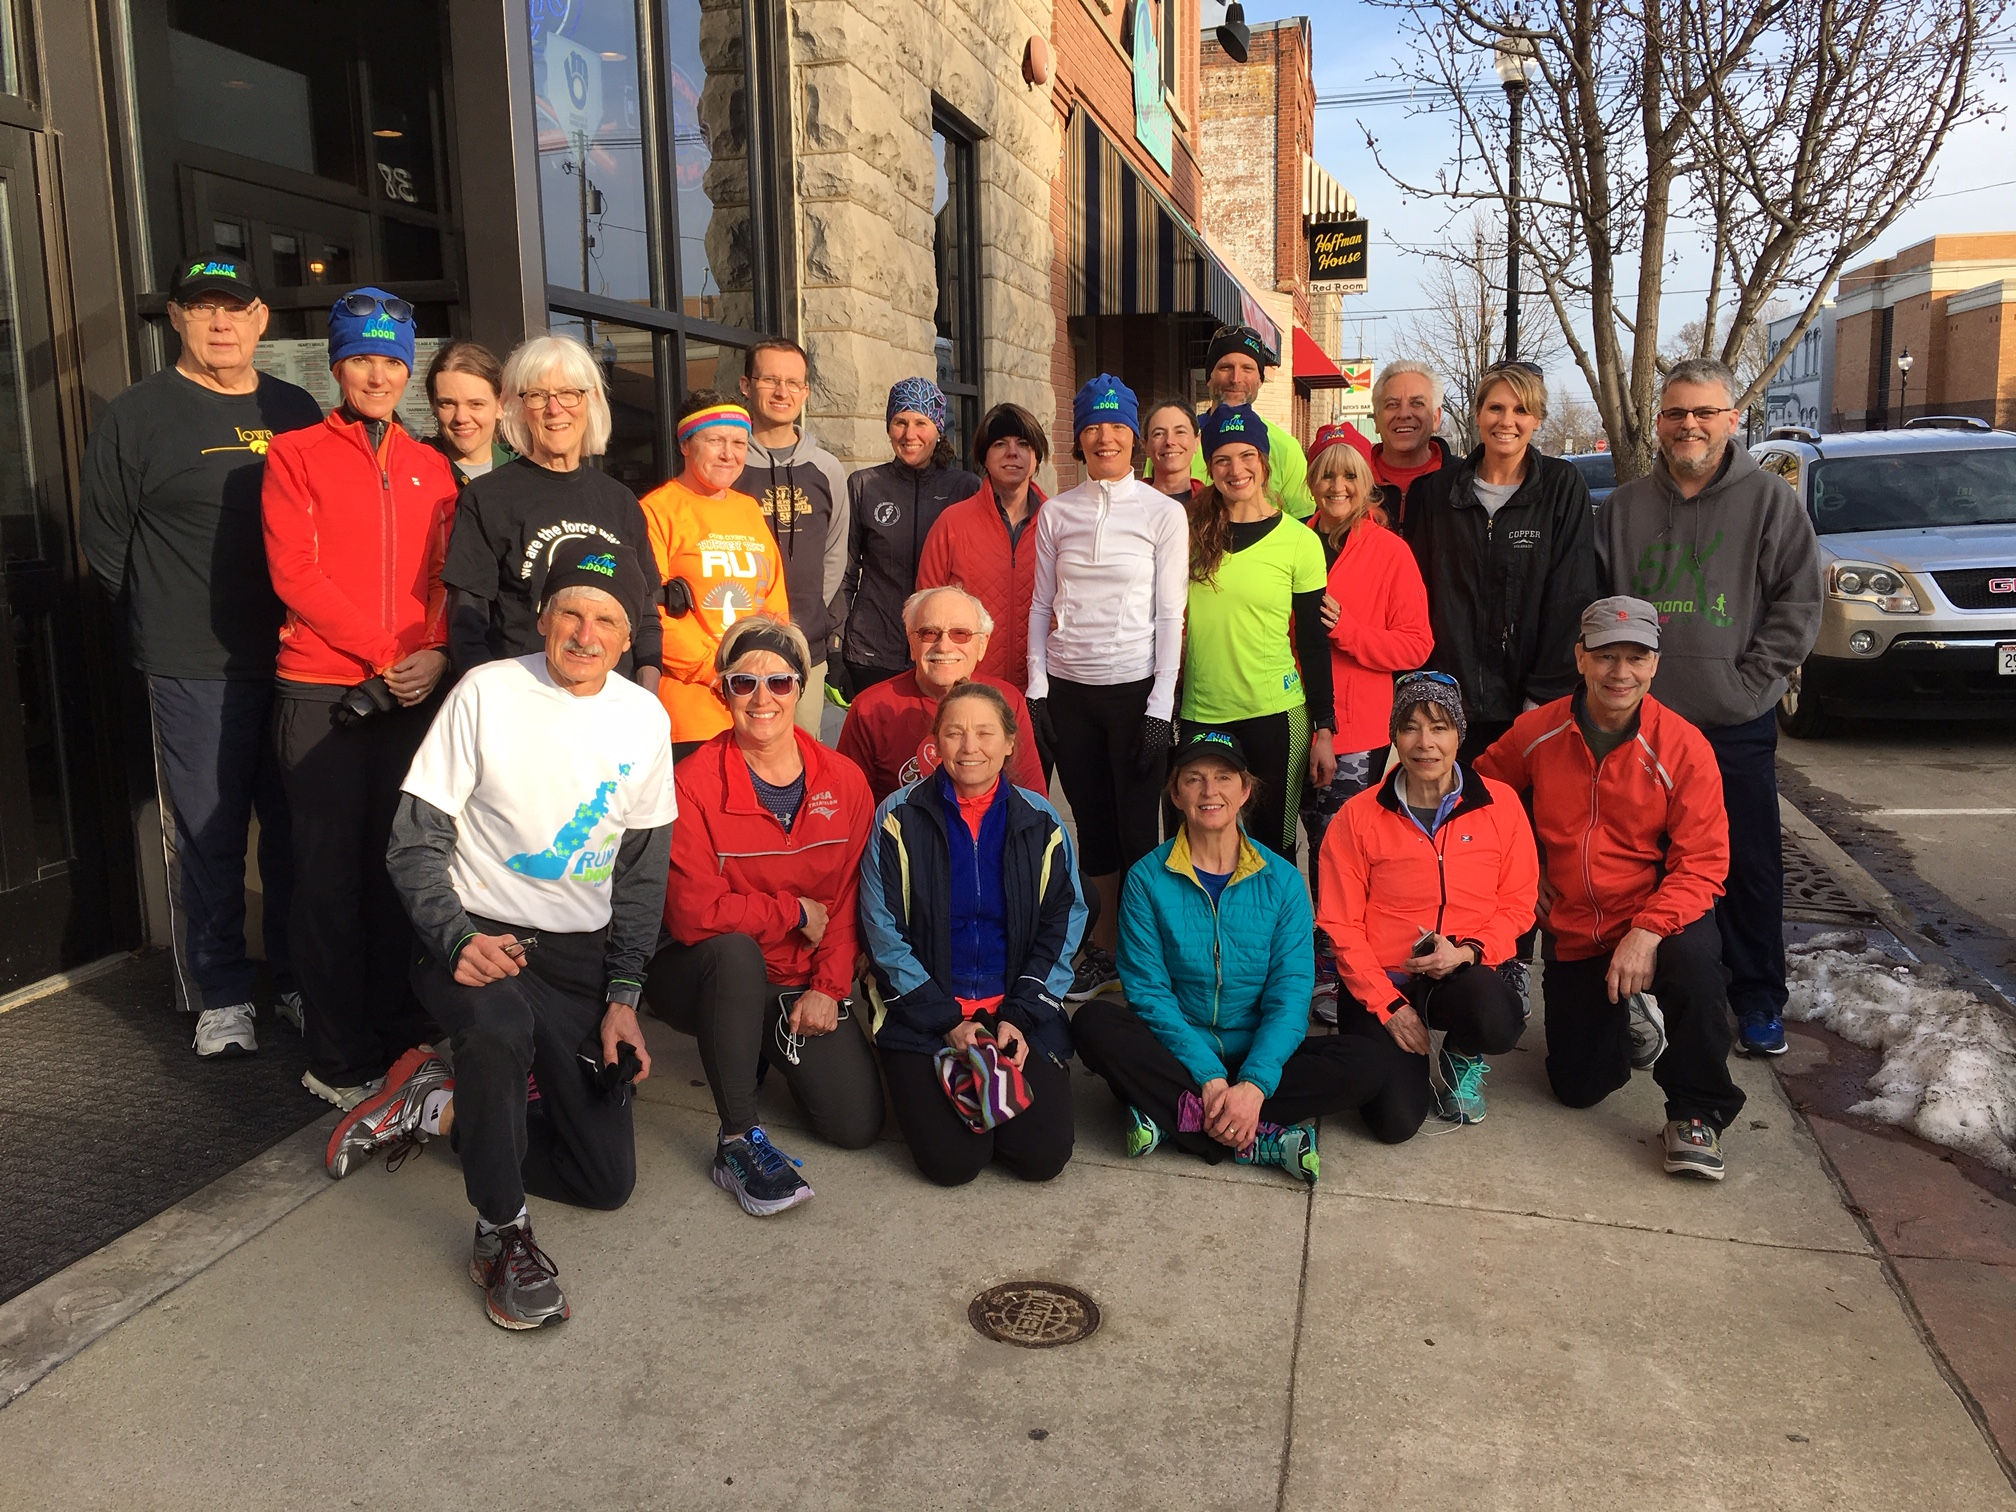 And so the 2019 season begins with a great fun run up and down Memorial Drive from the Door County Fire Company on April 16 in Sturgeon Bay.